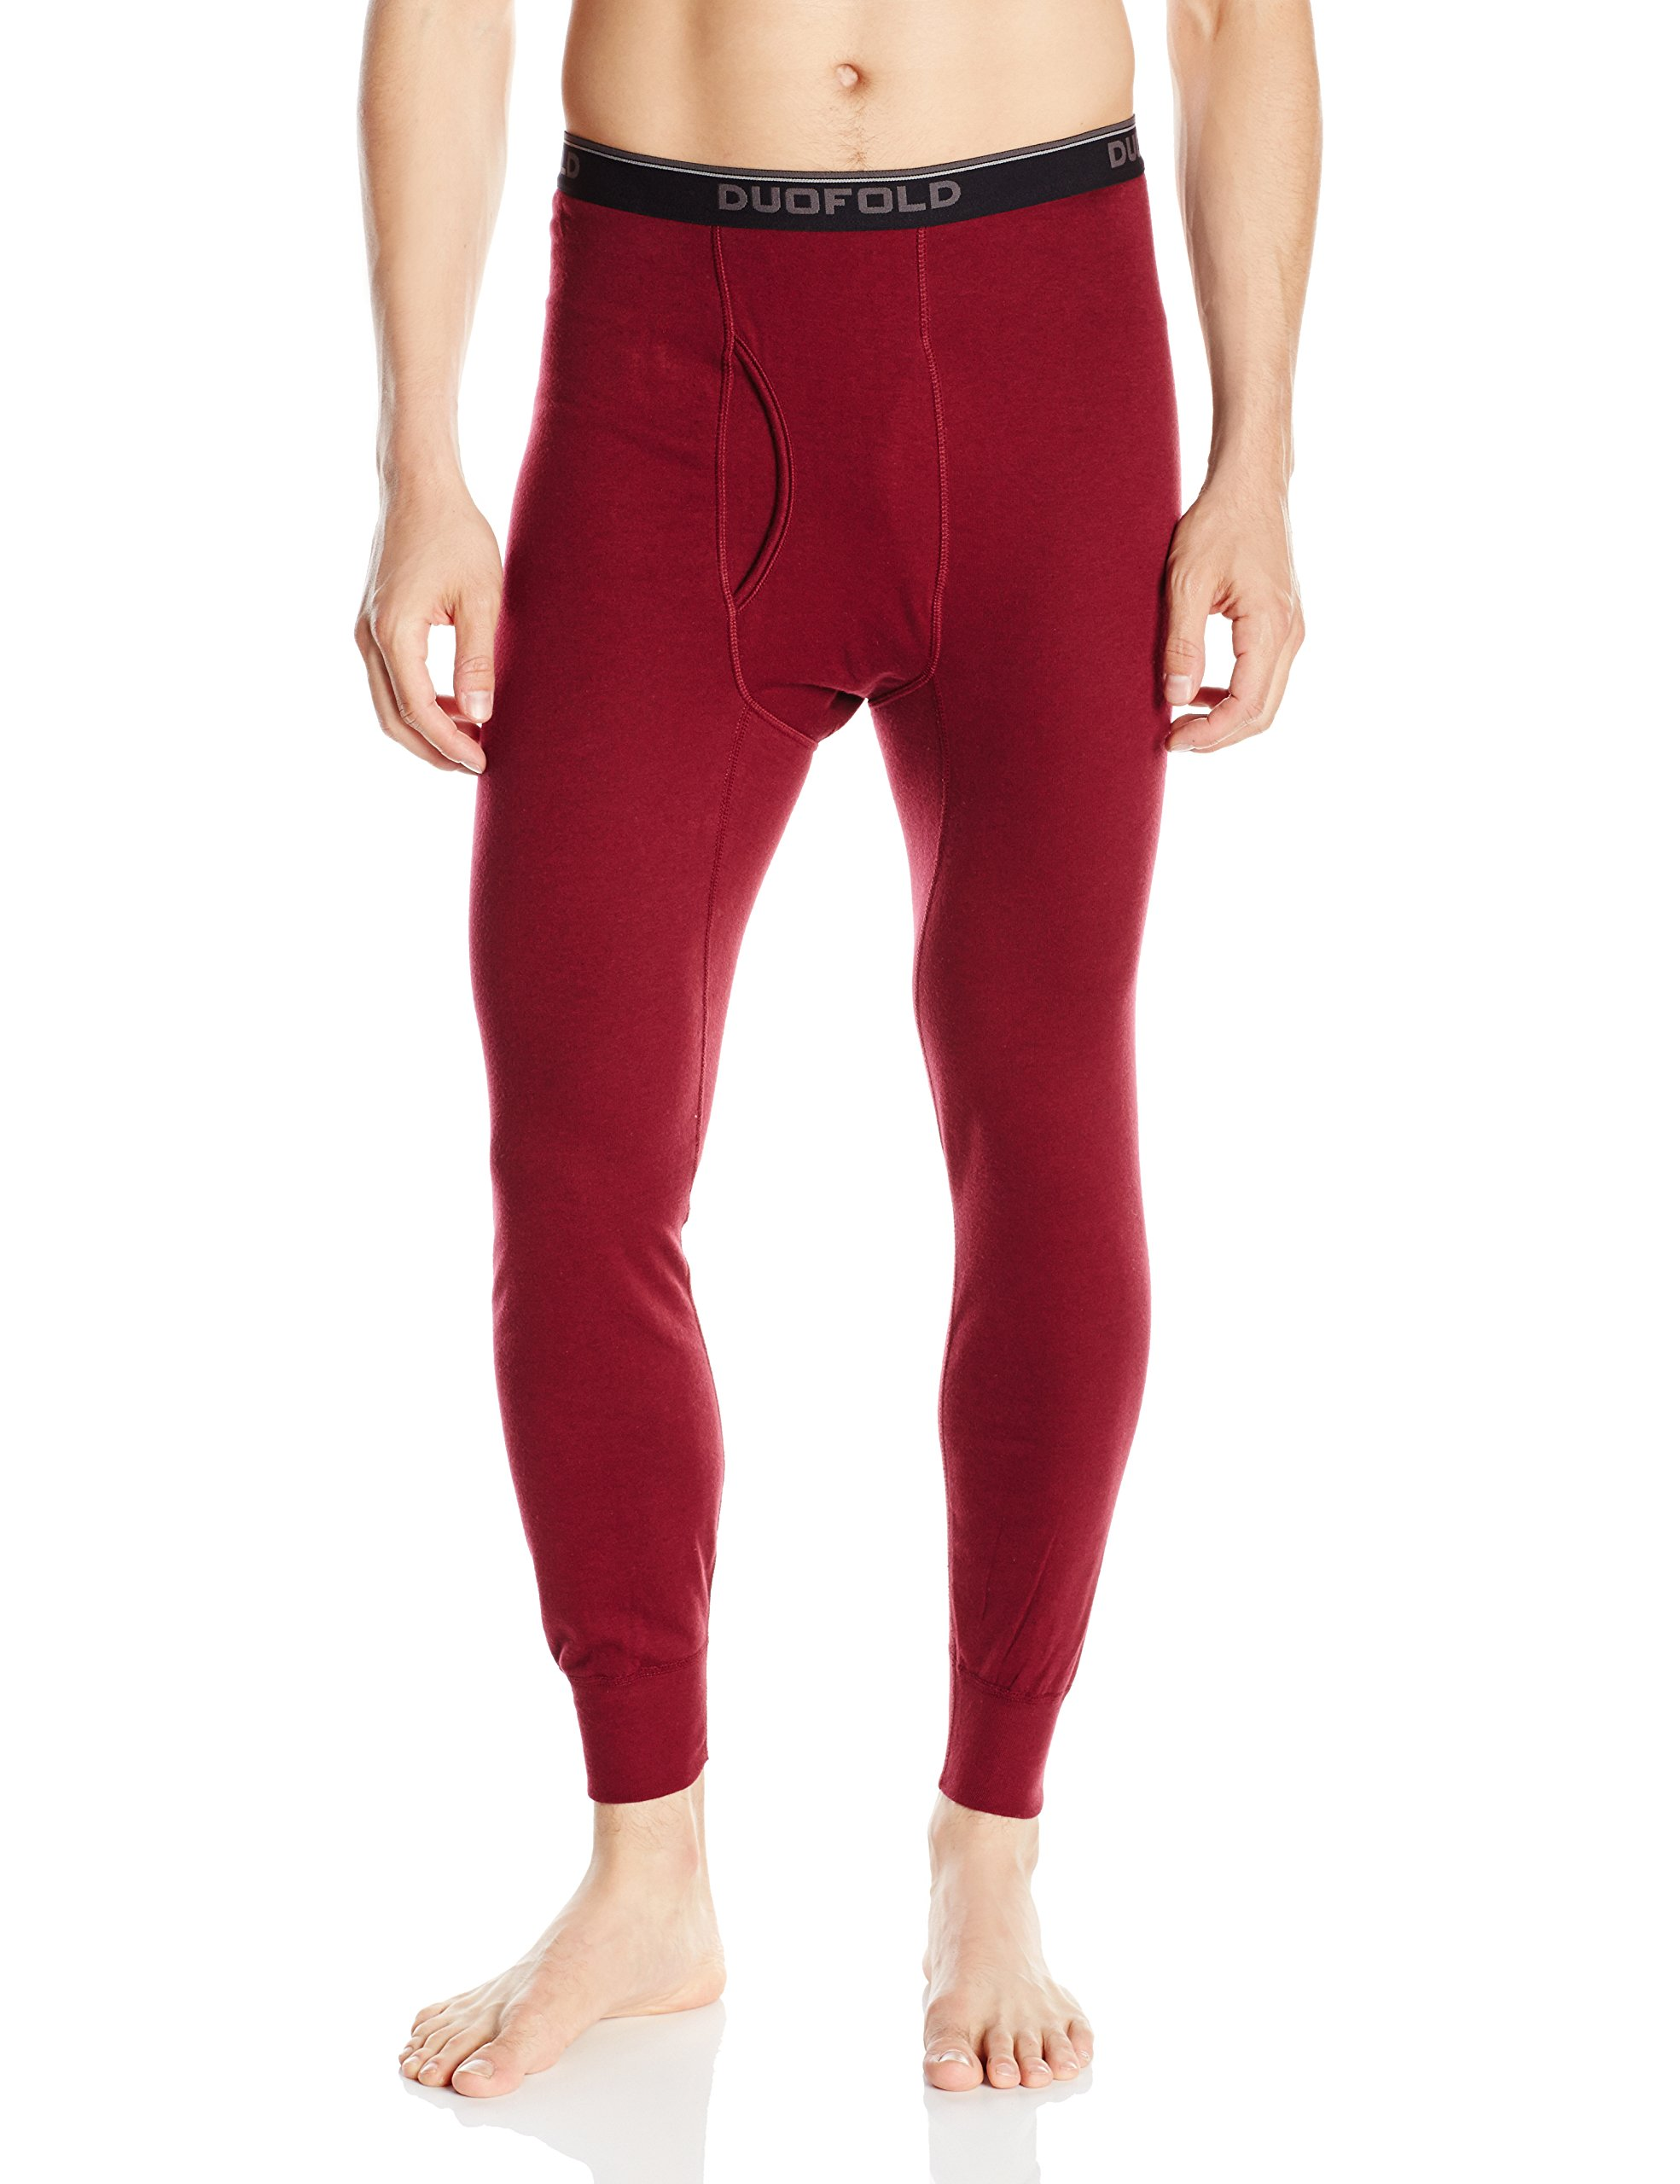 Duofold Men's Mid Weight Wicking Thermal Pant, Bordeaux Red, XX-Large